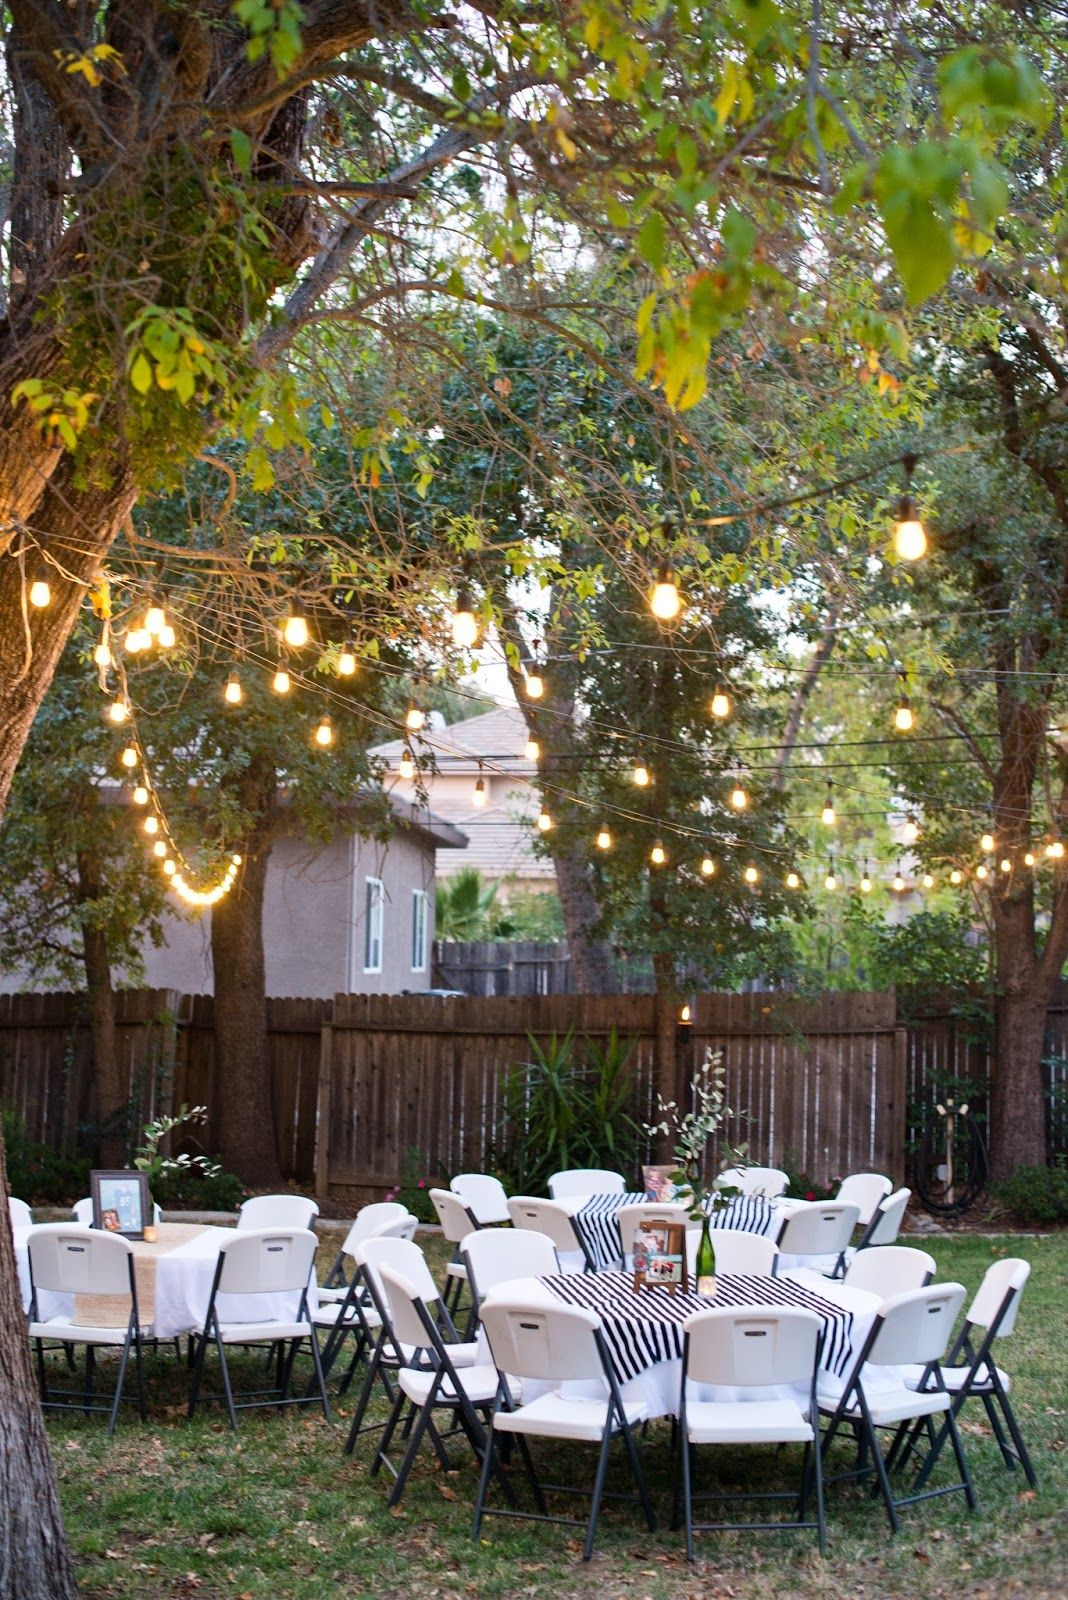 Backyard Birthday Party For The Guy In Your Life Graduation Party with Backyard Birthday Party Ideas